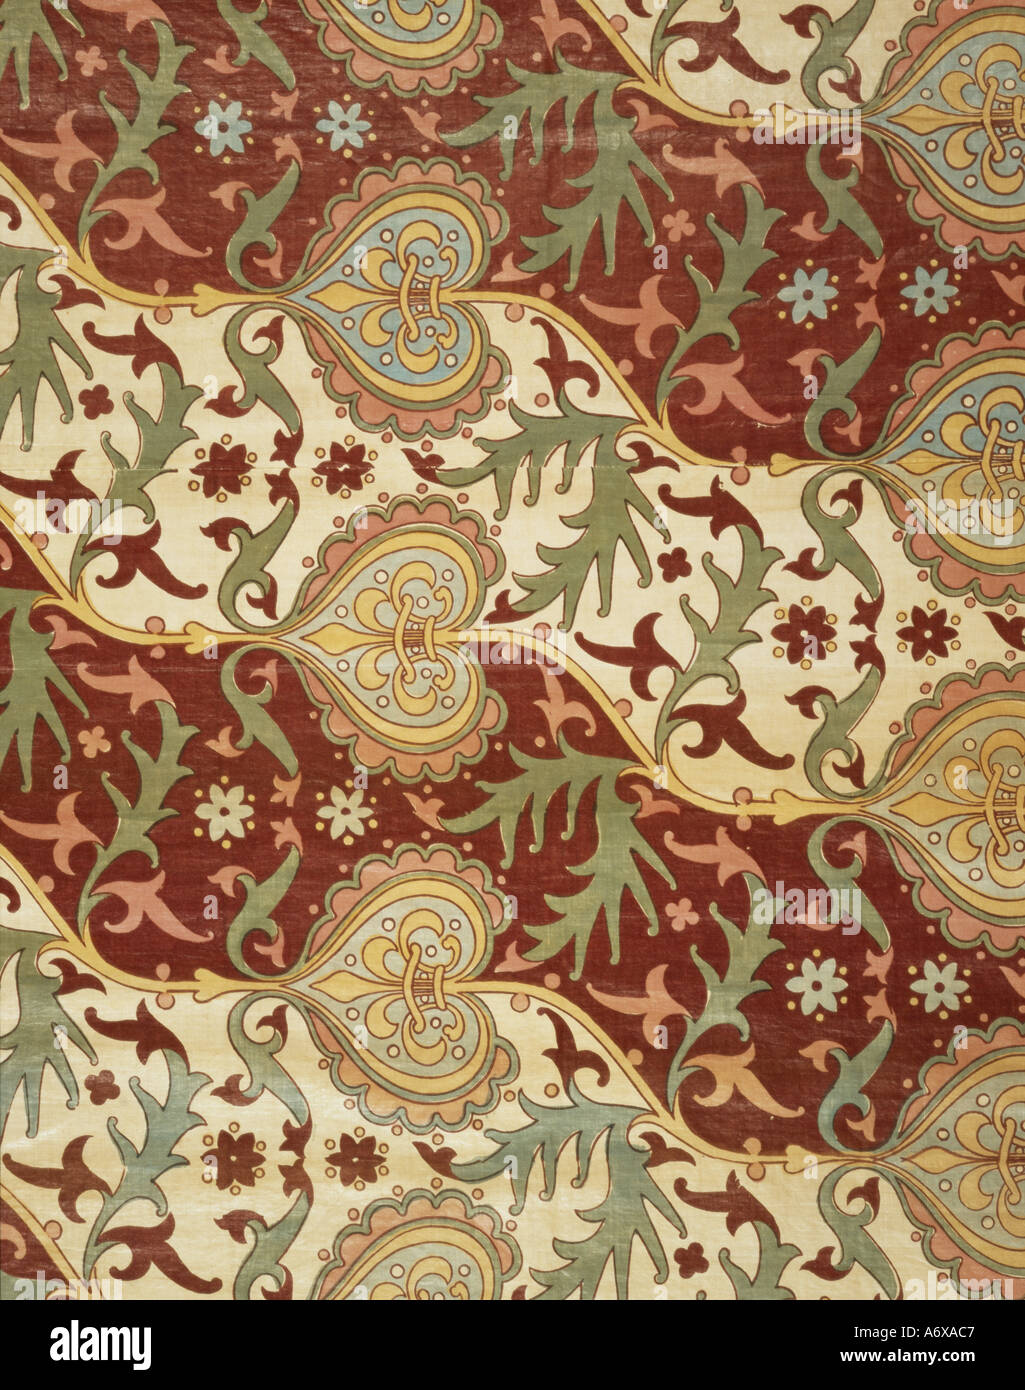 Gothic Arabesque textile, by A.W.N. Pugin. England, mid-19th century. - Stock Image